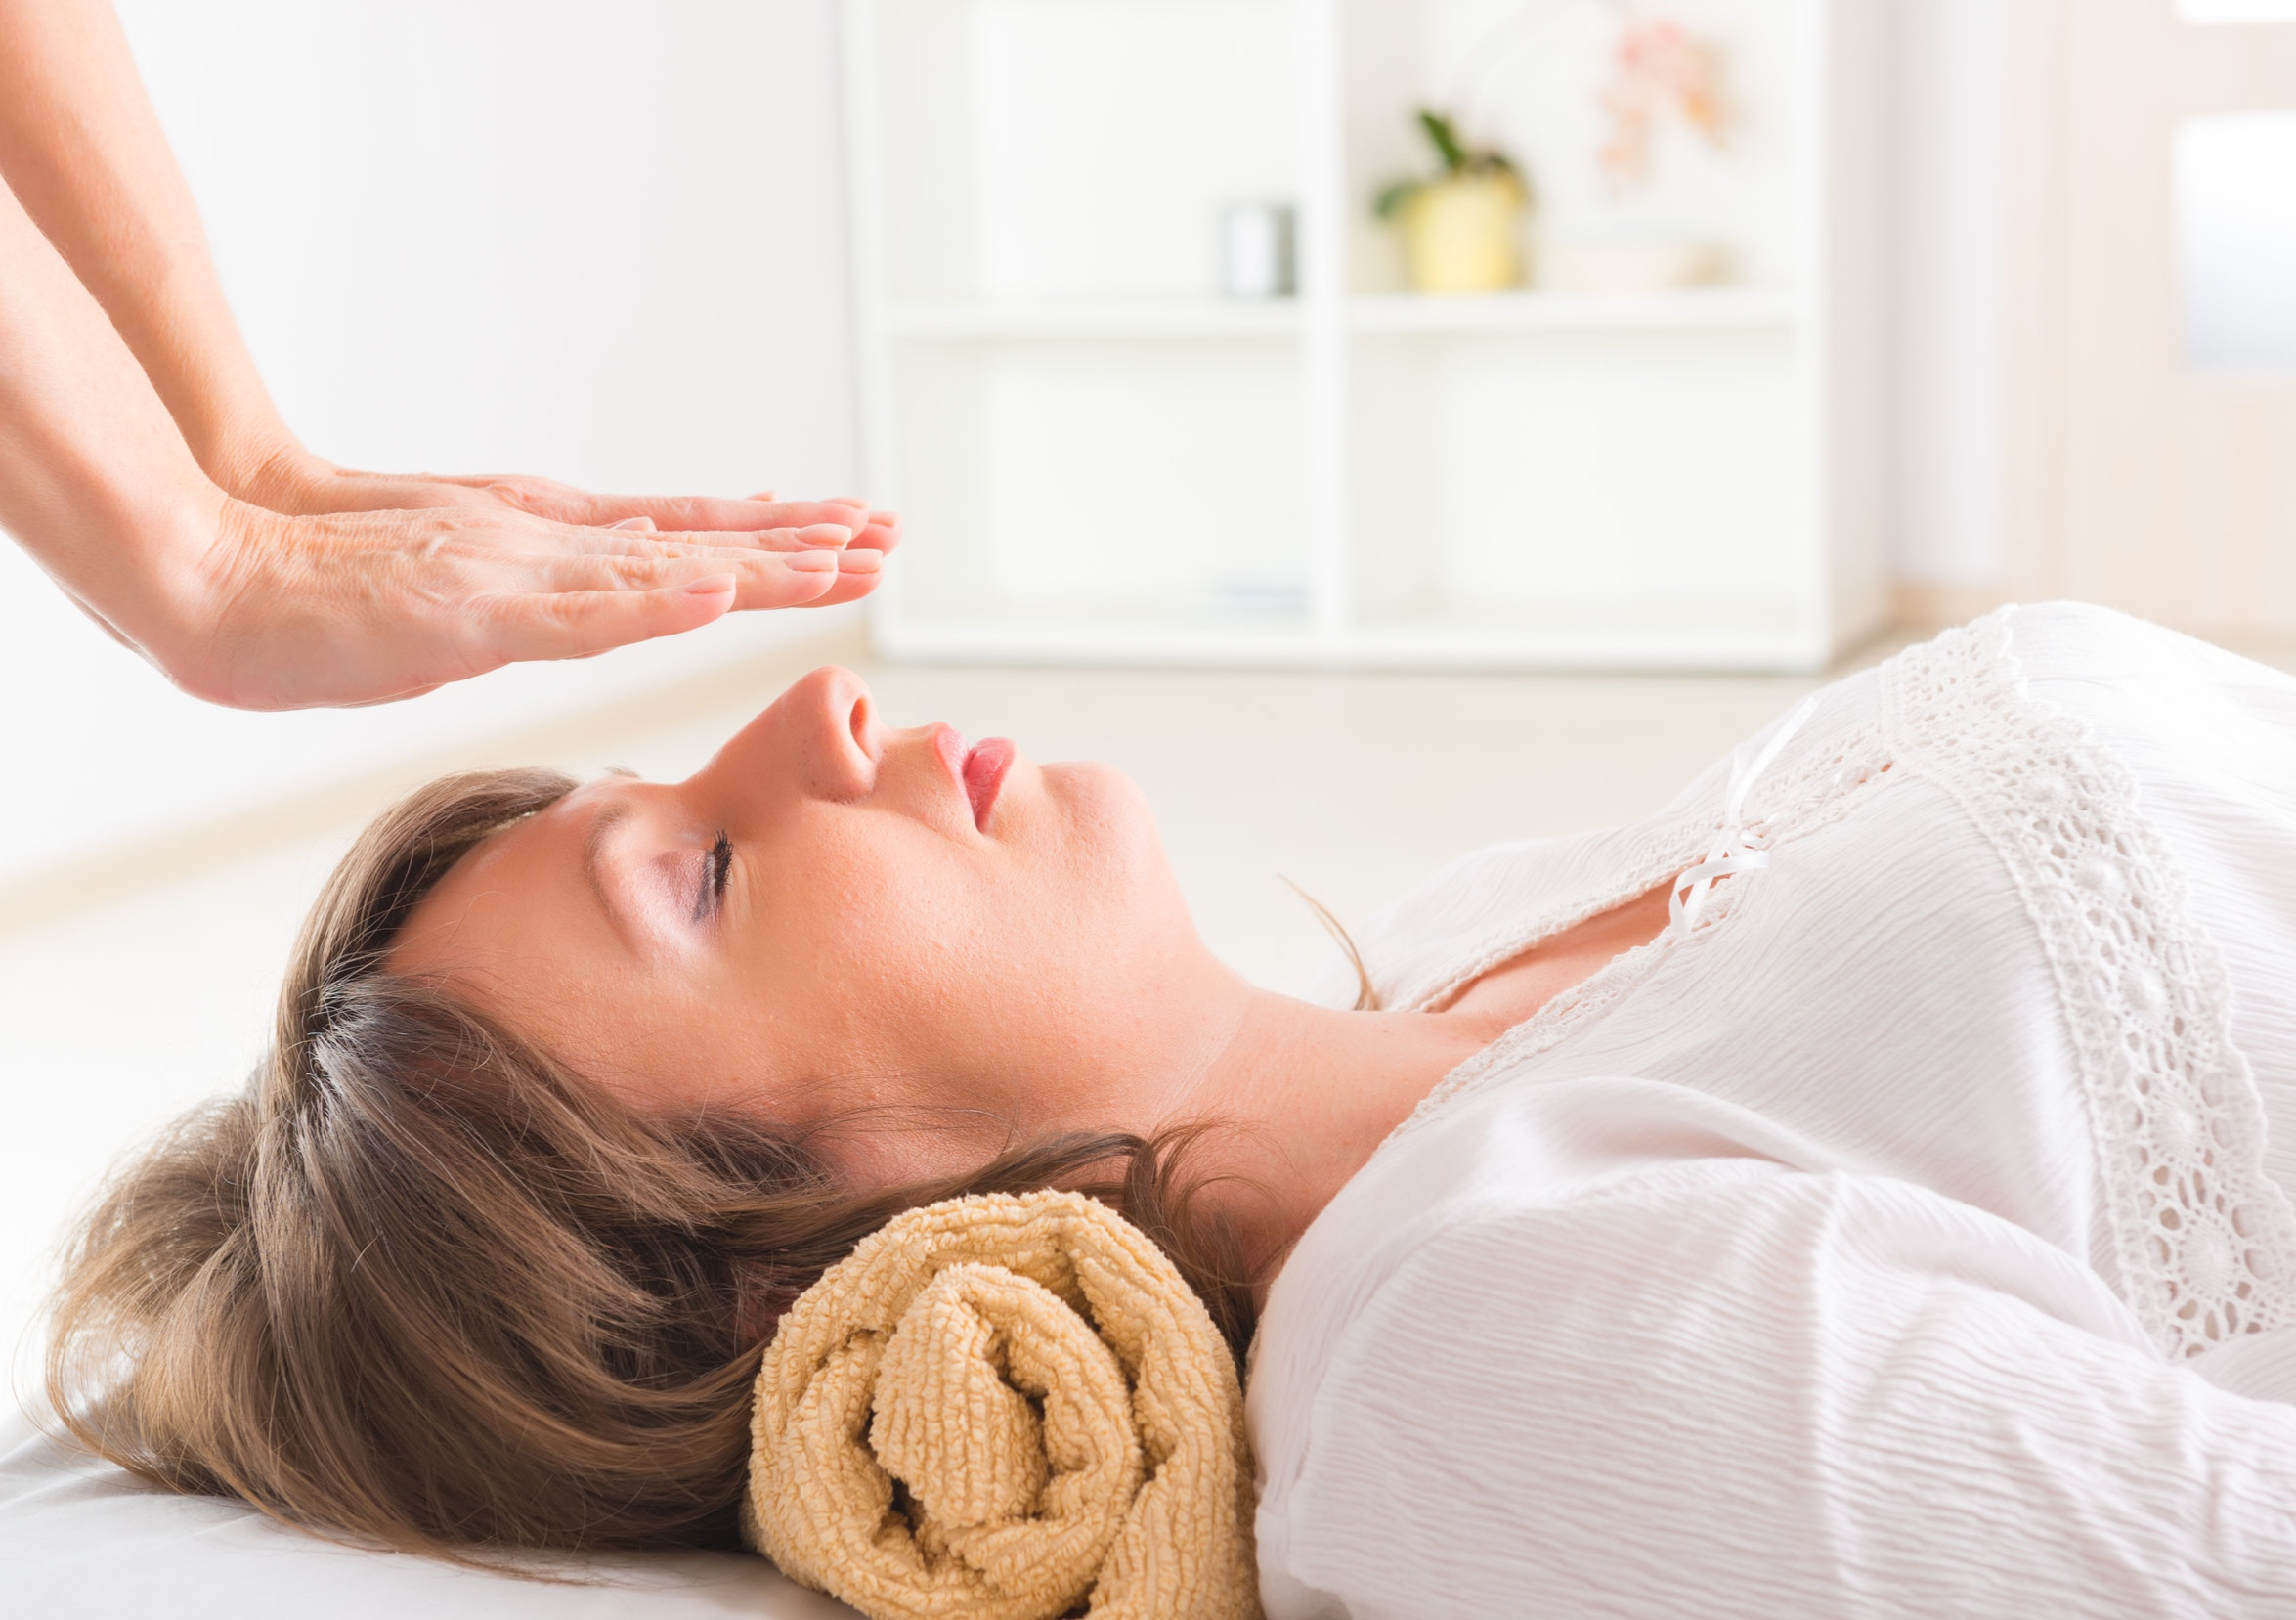 GTi Reiki Level 1 & 2  - Performing a Reiki treatment allows you to provide powerful healing to your client as well as helping them relax, balance their energies and improve their well-being.This course will teach you everything you need to know about offering a professional Reiki treatment and includes your level one and two Reiki attunements from an accredited Reiki master as well as training in the use of Reiki energy and a practical assessment.This GTi Reiki course follows the National Occupational Standards and covers consultation, contra-indications and preparing for treatment, as well as various techniques you can use as you grow more confident channelling Reiki on your Reiki journey.The GTi Reiki course includes the GTi Professional Standards course, usually priced at £49 + VAT, for all students who have not completed this course.The GTi Reiki Award is accredited by the Guild of Beauty Therapists, the UK's leading professional beauty trade body.The course is beautifully written and accompanied by images. Upon completion of the online theory modules, you will receive a PDF manual which you can refer back to. Eight of the modules and examinations are completed online with full online support available.You will also be attuned, trained and assessed by a Reiki master at your chosen practical training centre. On successful completion of the course, students will receive access to a GTi Reiki certificate which is acceptable for insurance purposes with The Guild of Beauty Therapists.Title:Reiki Level 1 and 2 Online Course and Practical TrainingPrice: £125£100 payable to Urban Oasis and £25 payable when you register with GTiSummary:This course covers the techniques to professionally complete different levels of Reiki healing routines. Theory is delivered online with clear diagrams. The practical element is taught in a one day training session at a choice of UK locations and includes your Reiki level one and two attunements as well as training in using Reiki and an a